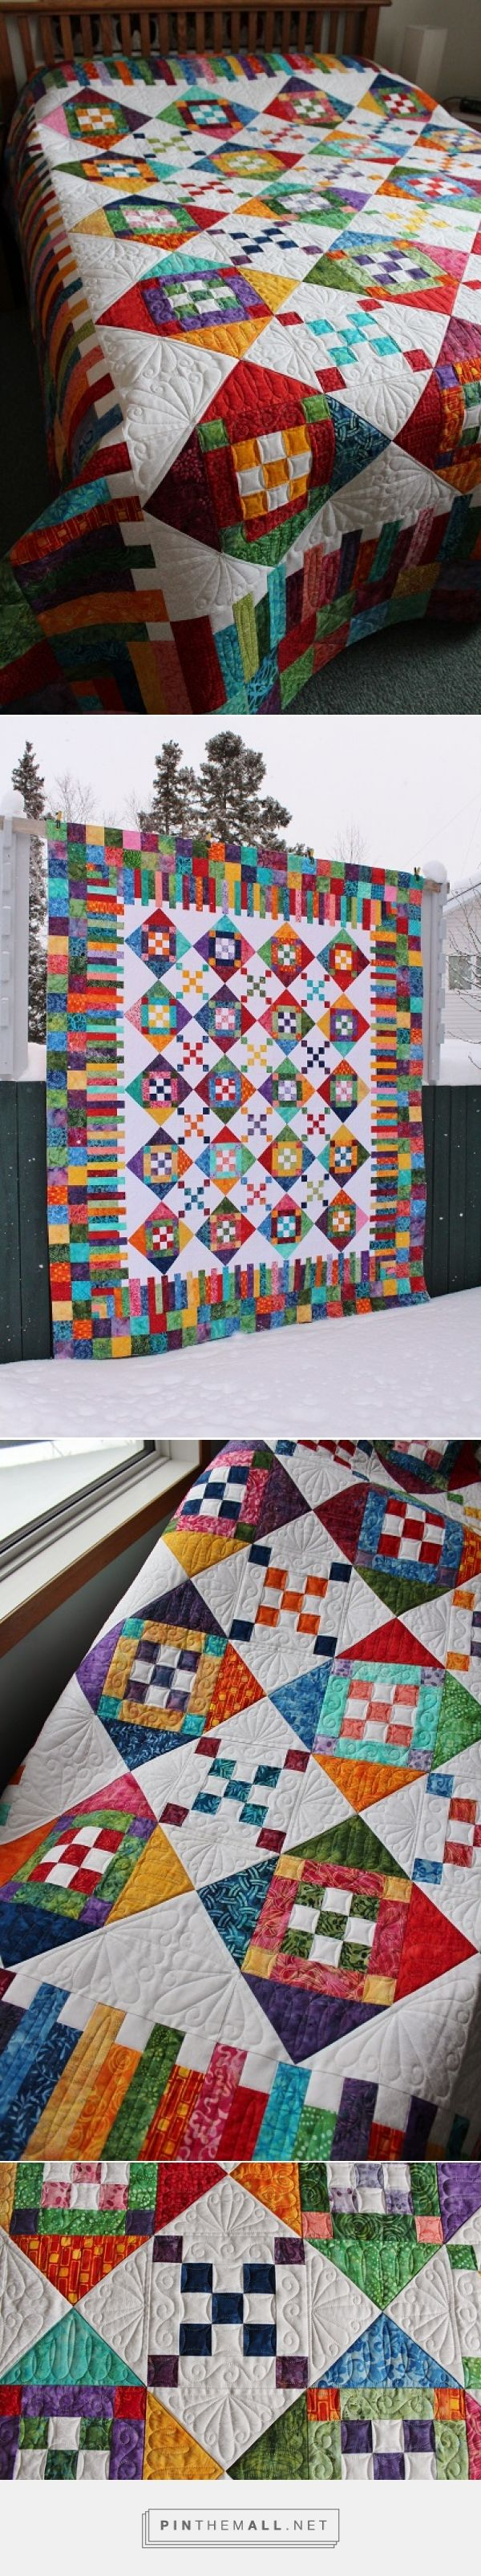 1850 best quilting layout images on pinterest kaleidoscope quilt